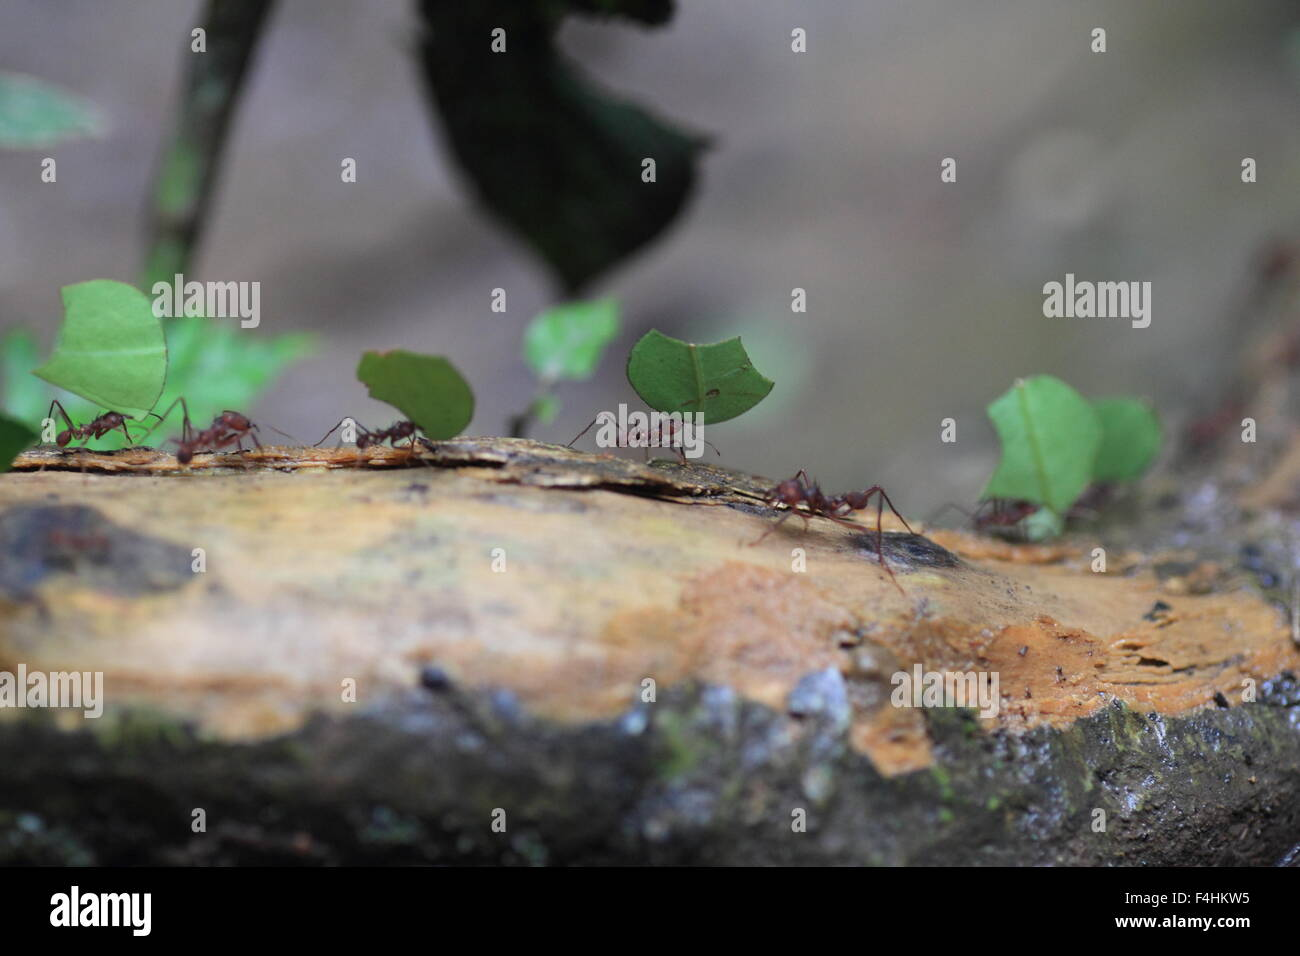 Leafcutter ants (Atta sexdens). Wild life animal. - Stock Image